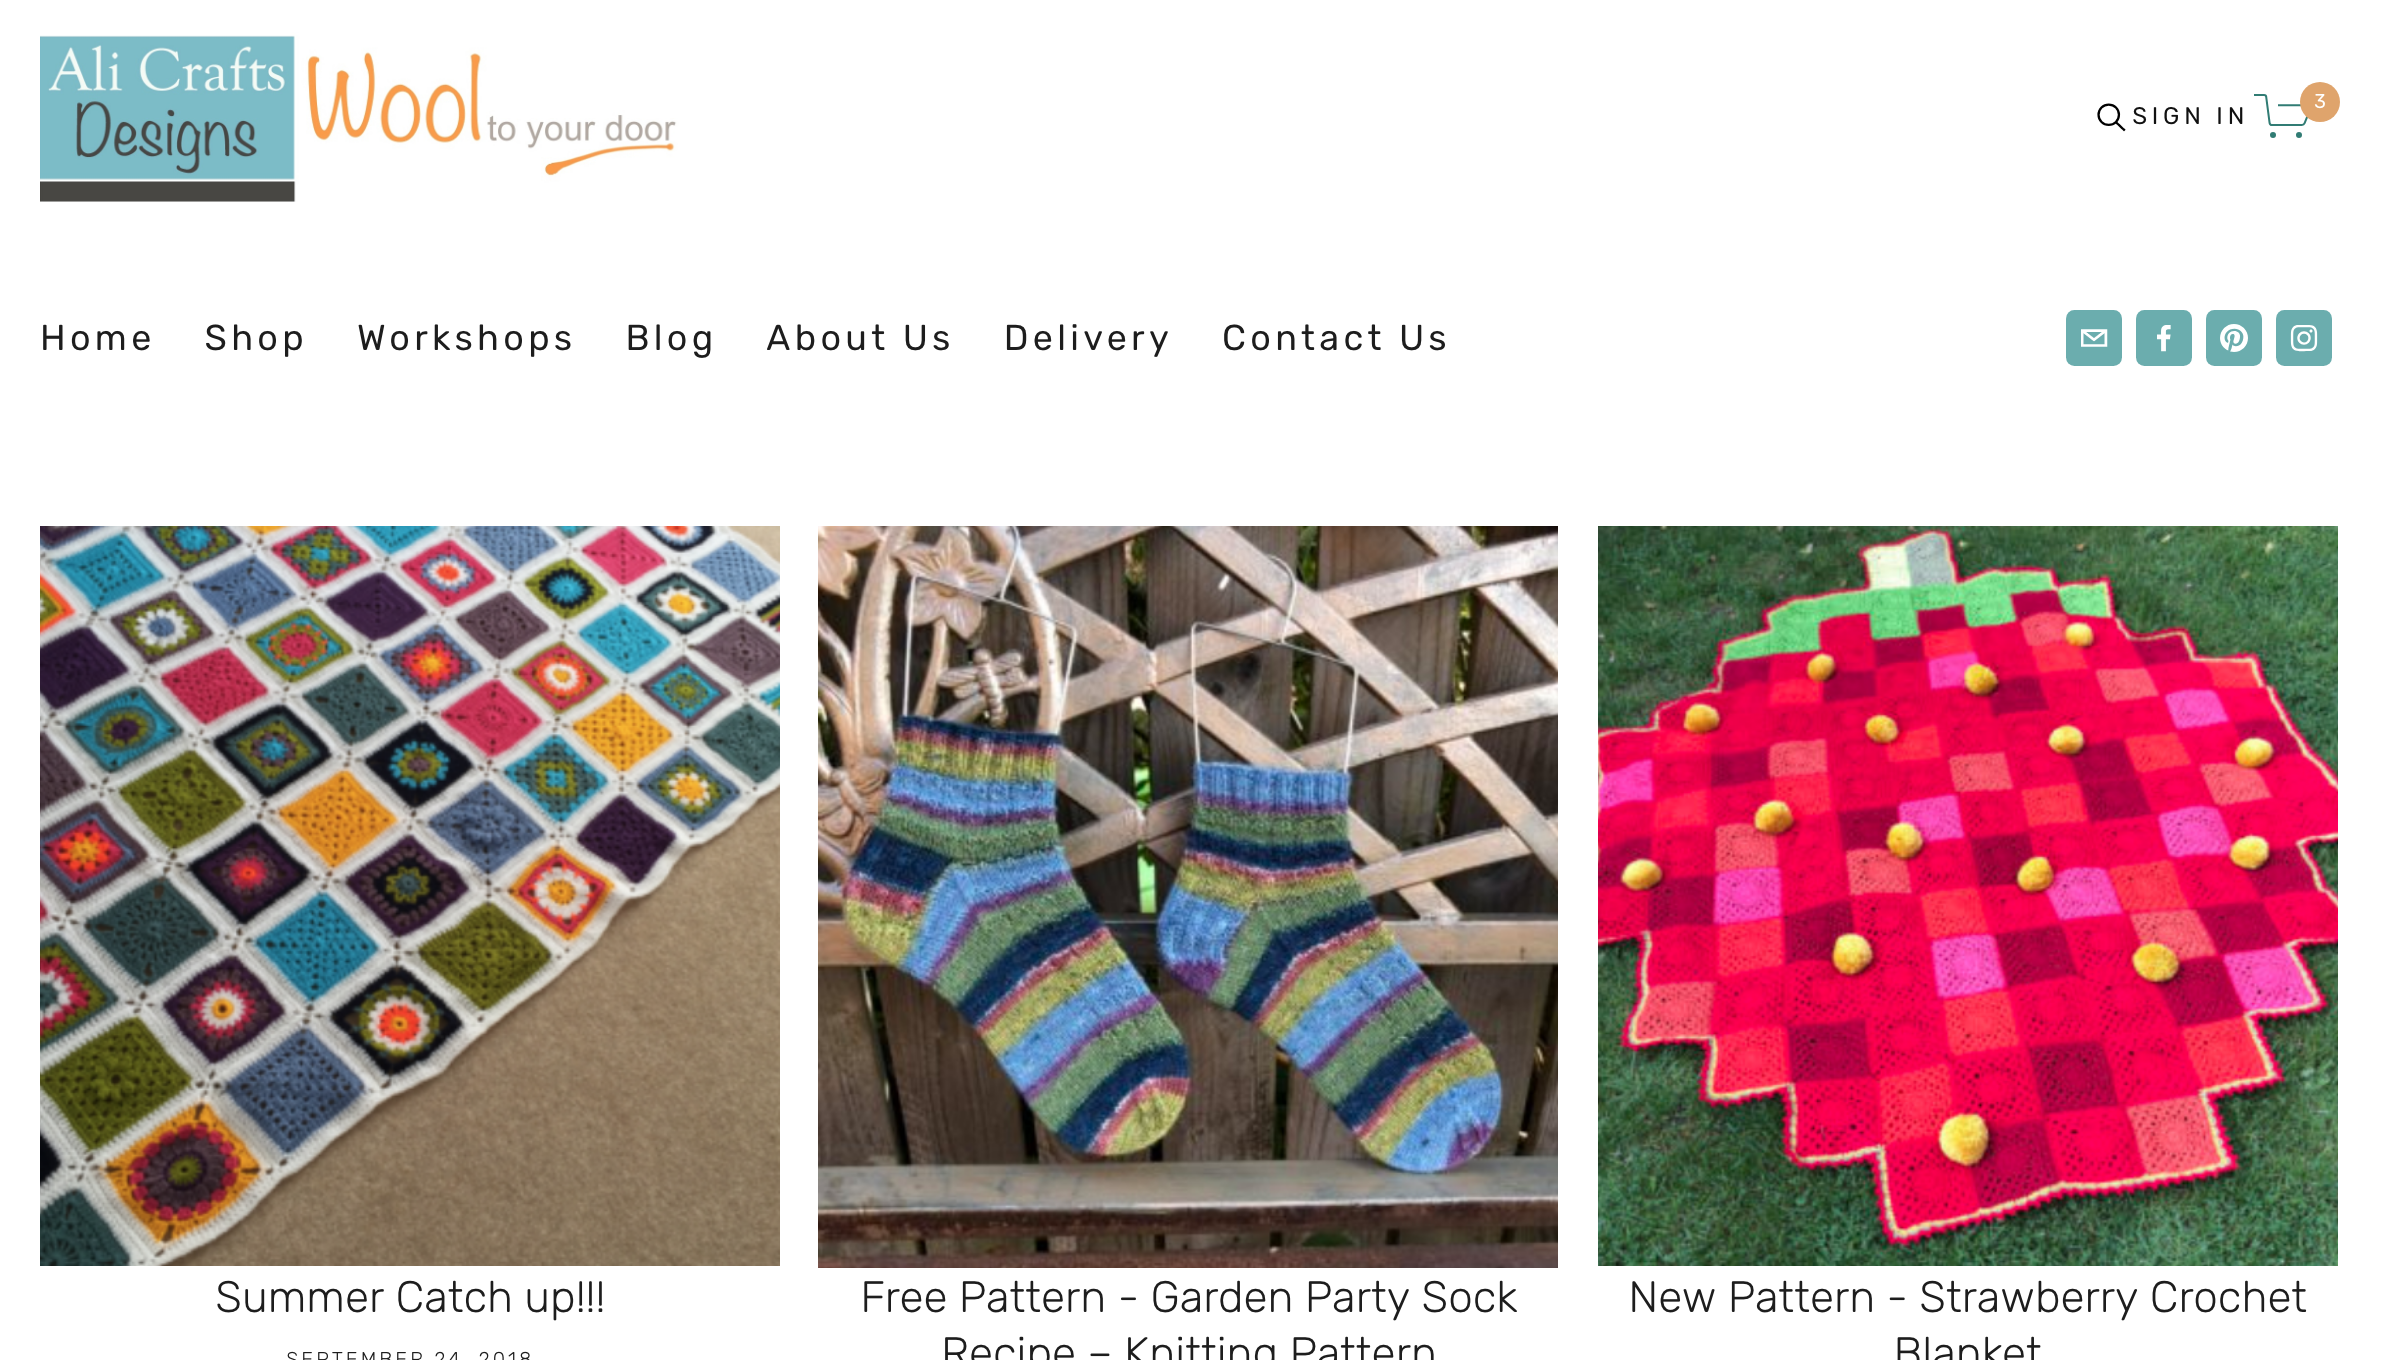 Brand new site - Simple layout so the products are easier to see and find.